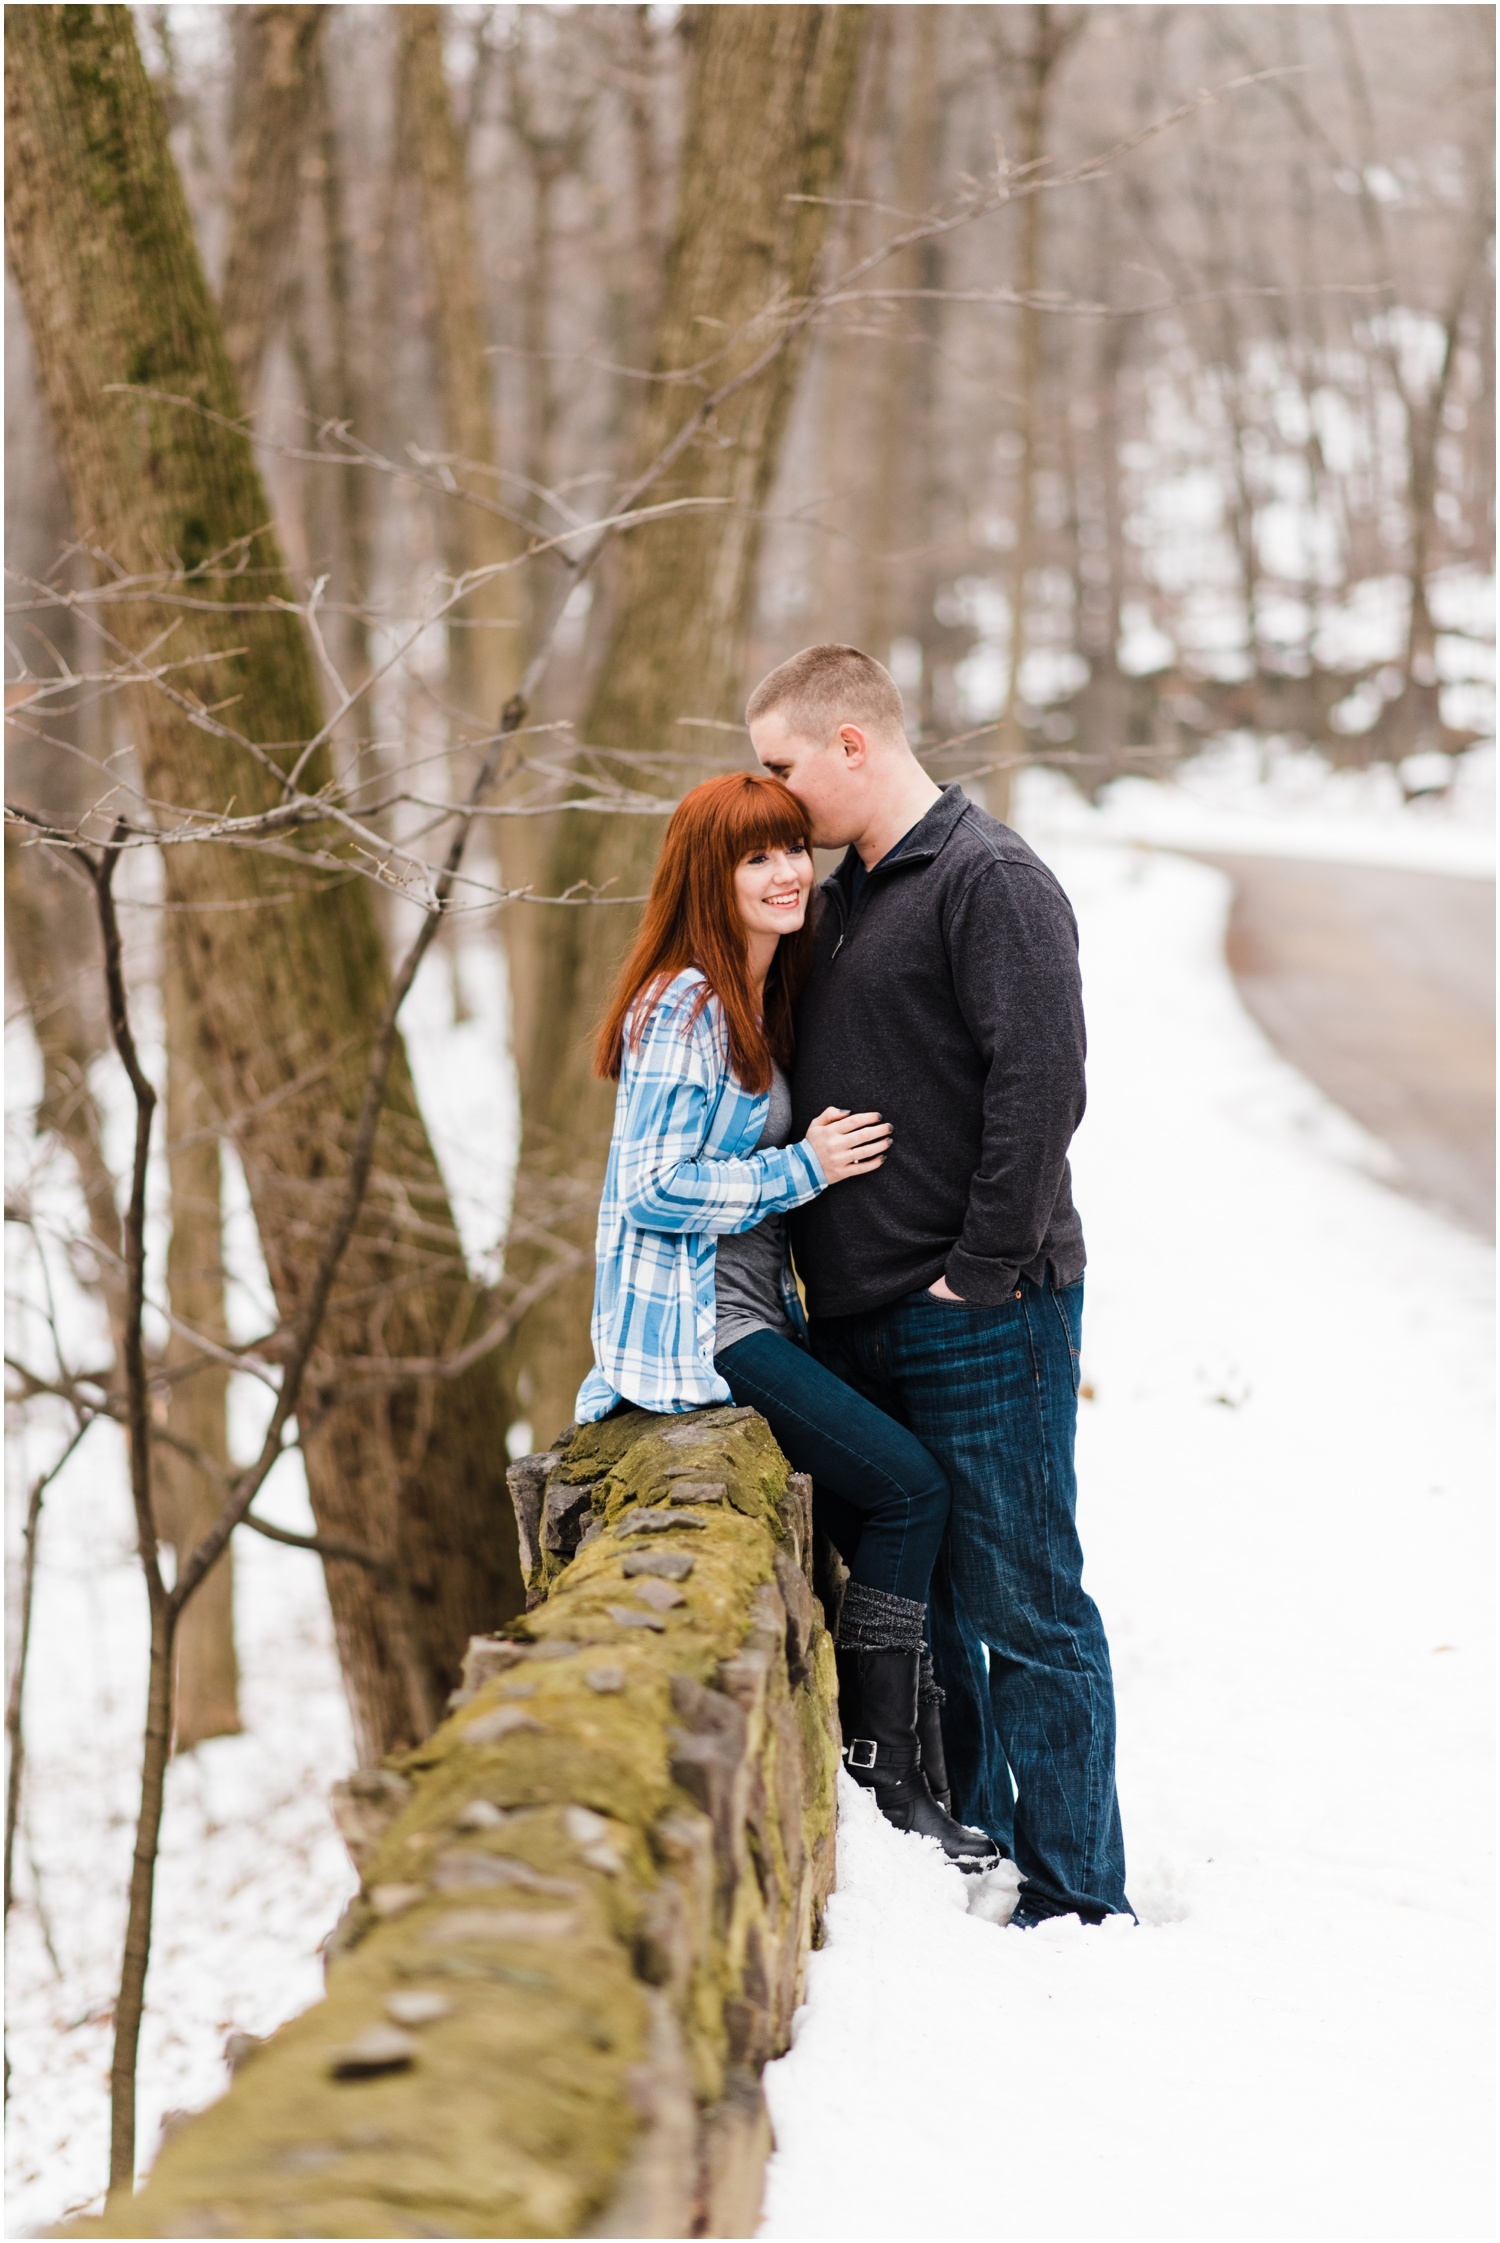 Devils-Lake-Baraboo-Wisconsin-Engagement-Photographer-Lindsey-And-Cody-Engaged-56.jpg